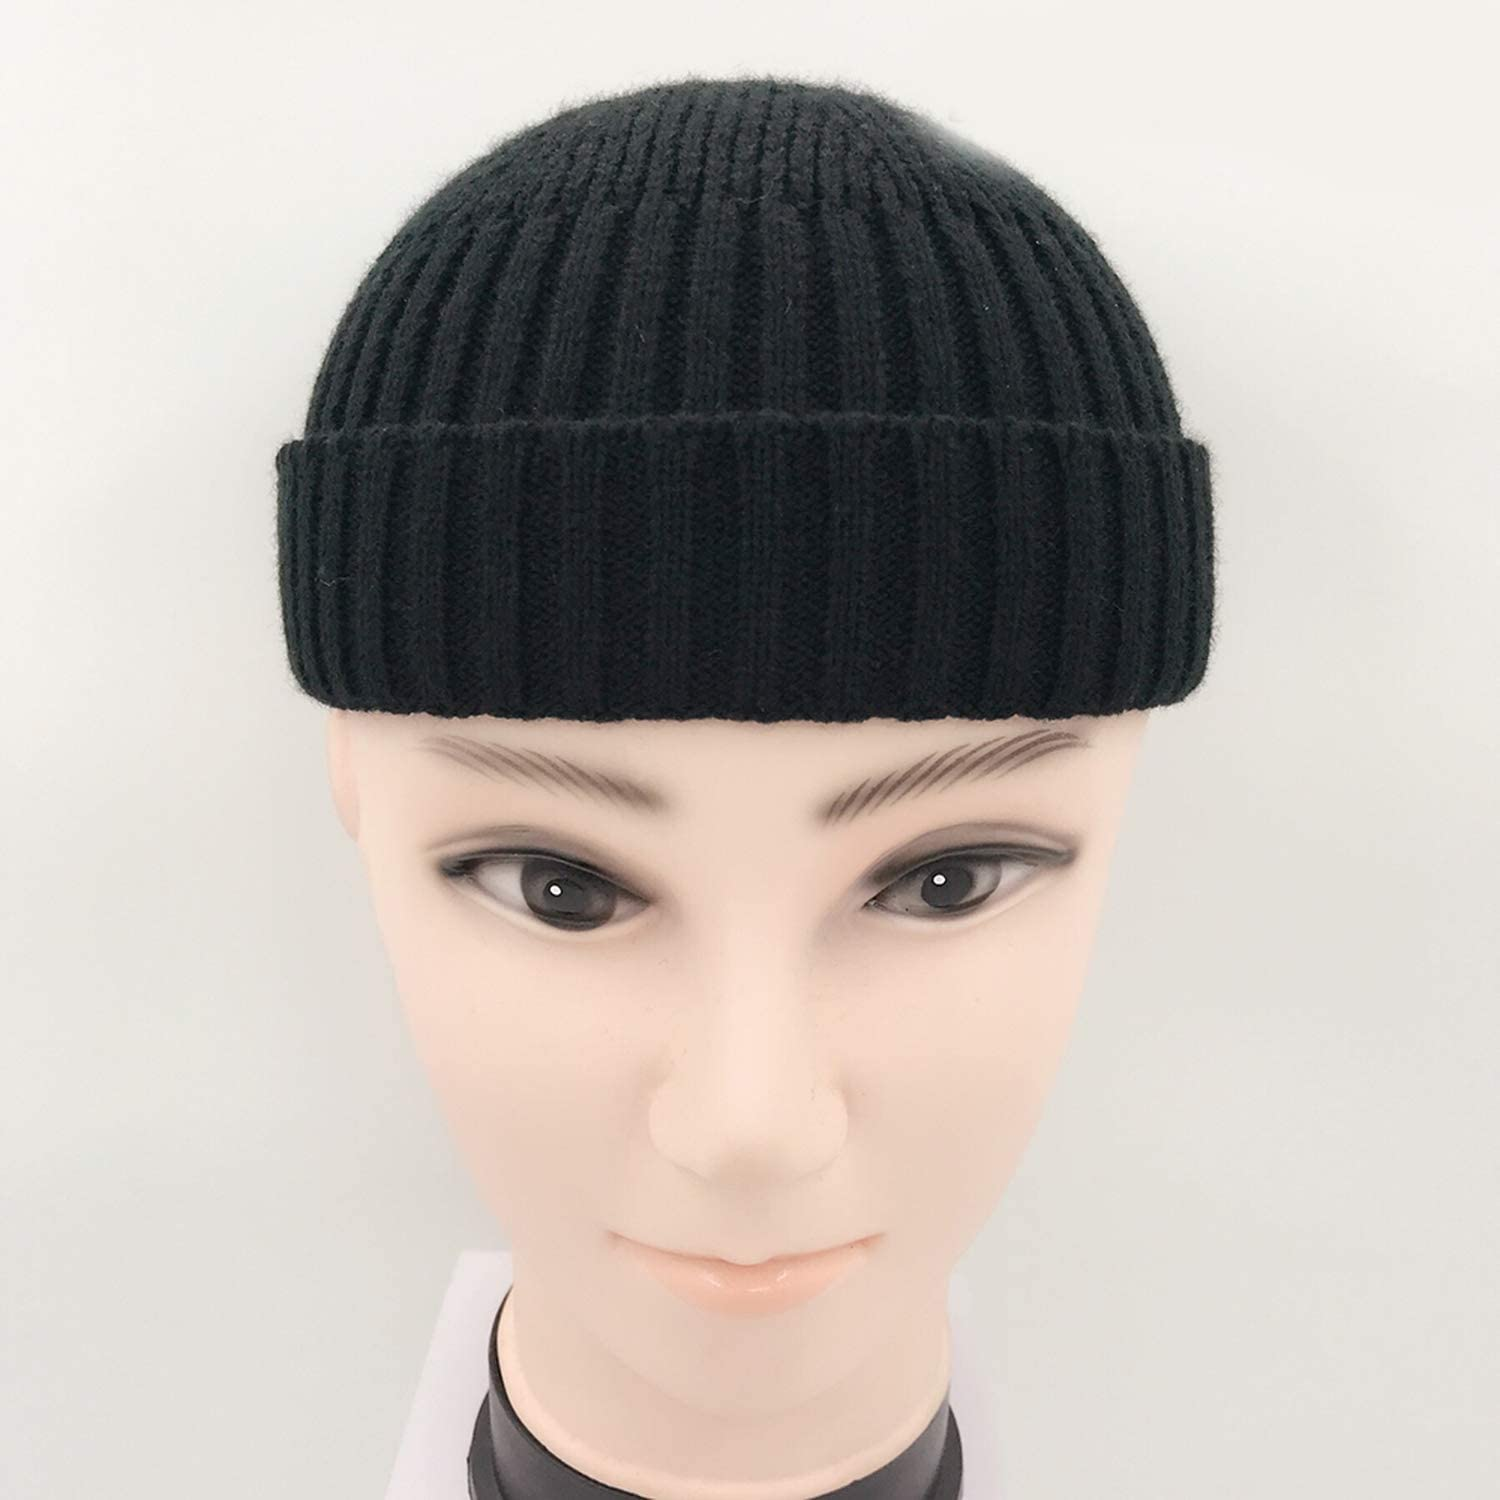 Mageed Anna Adult Men Knitted Skullcap Casual Short Cotton Thread Hip Hop Hat Retro Navy Fashion Warm Beanie Skullcap